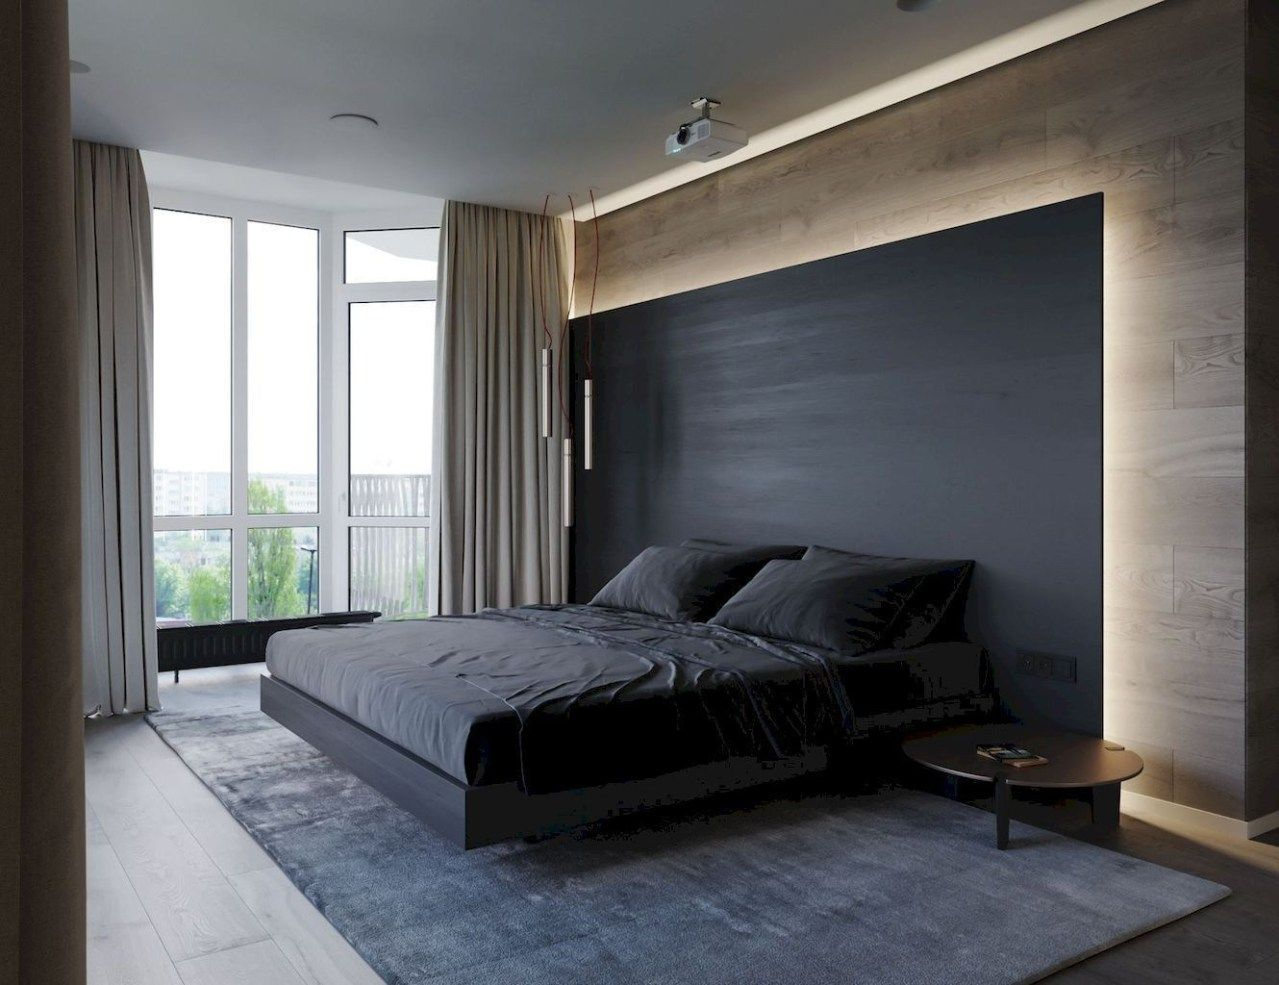 47 The Best Modern Bedroom Designs That Trend In This Year Matchness Com Fresh Bedroom Modern Bedroom Modern Bedroom Design